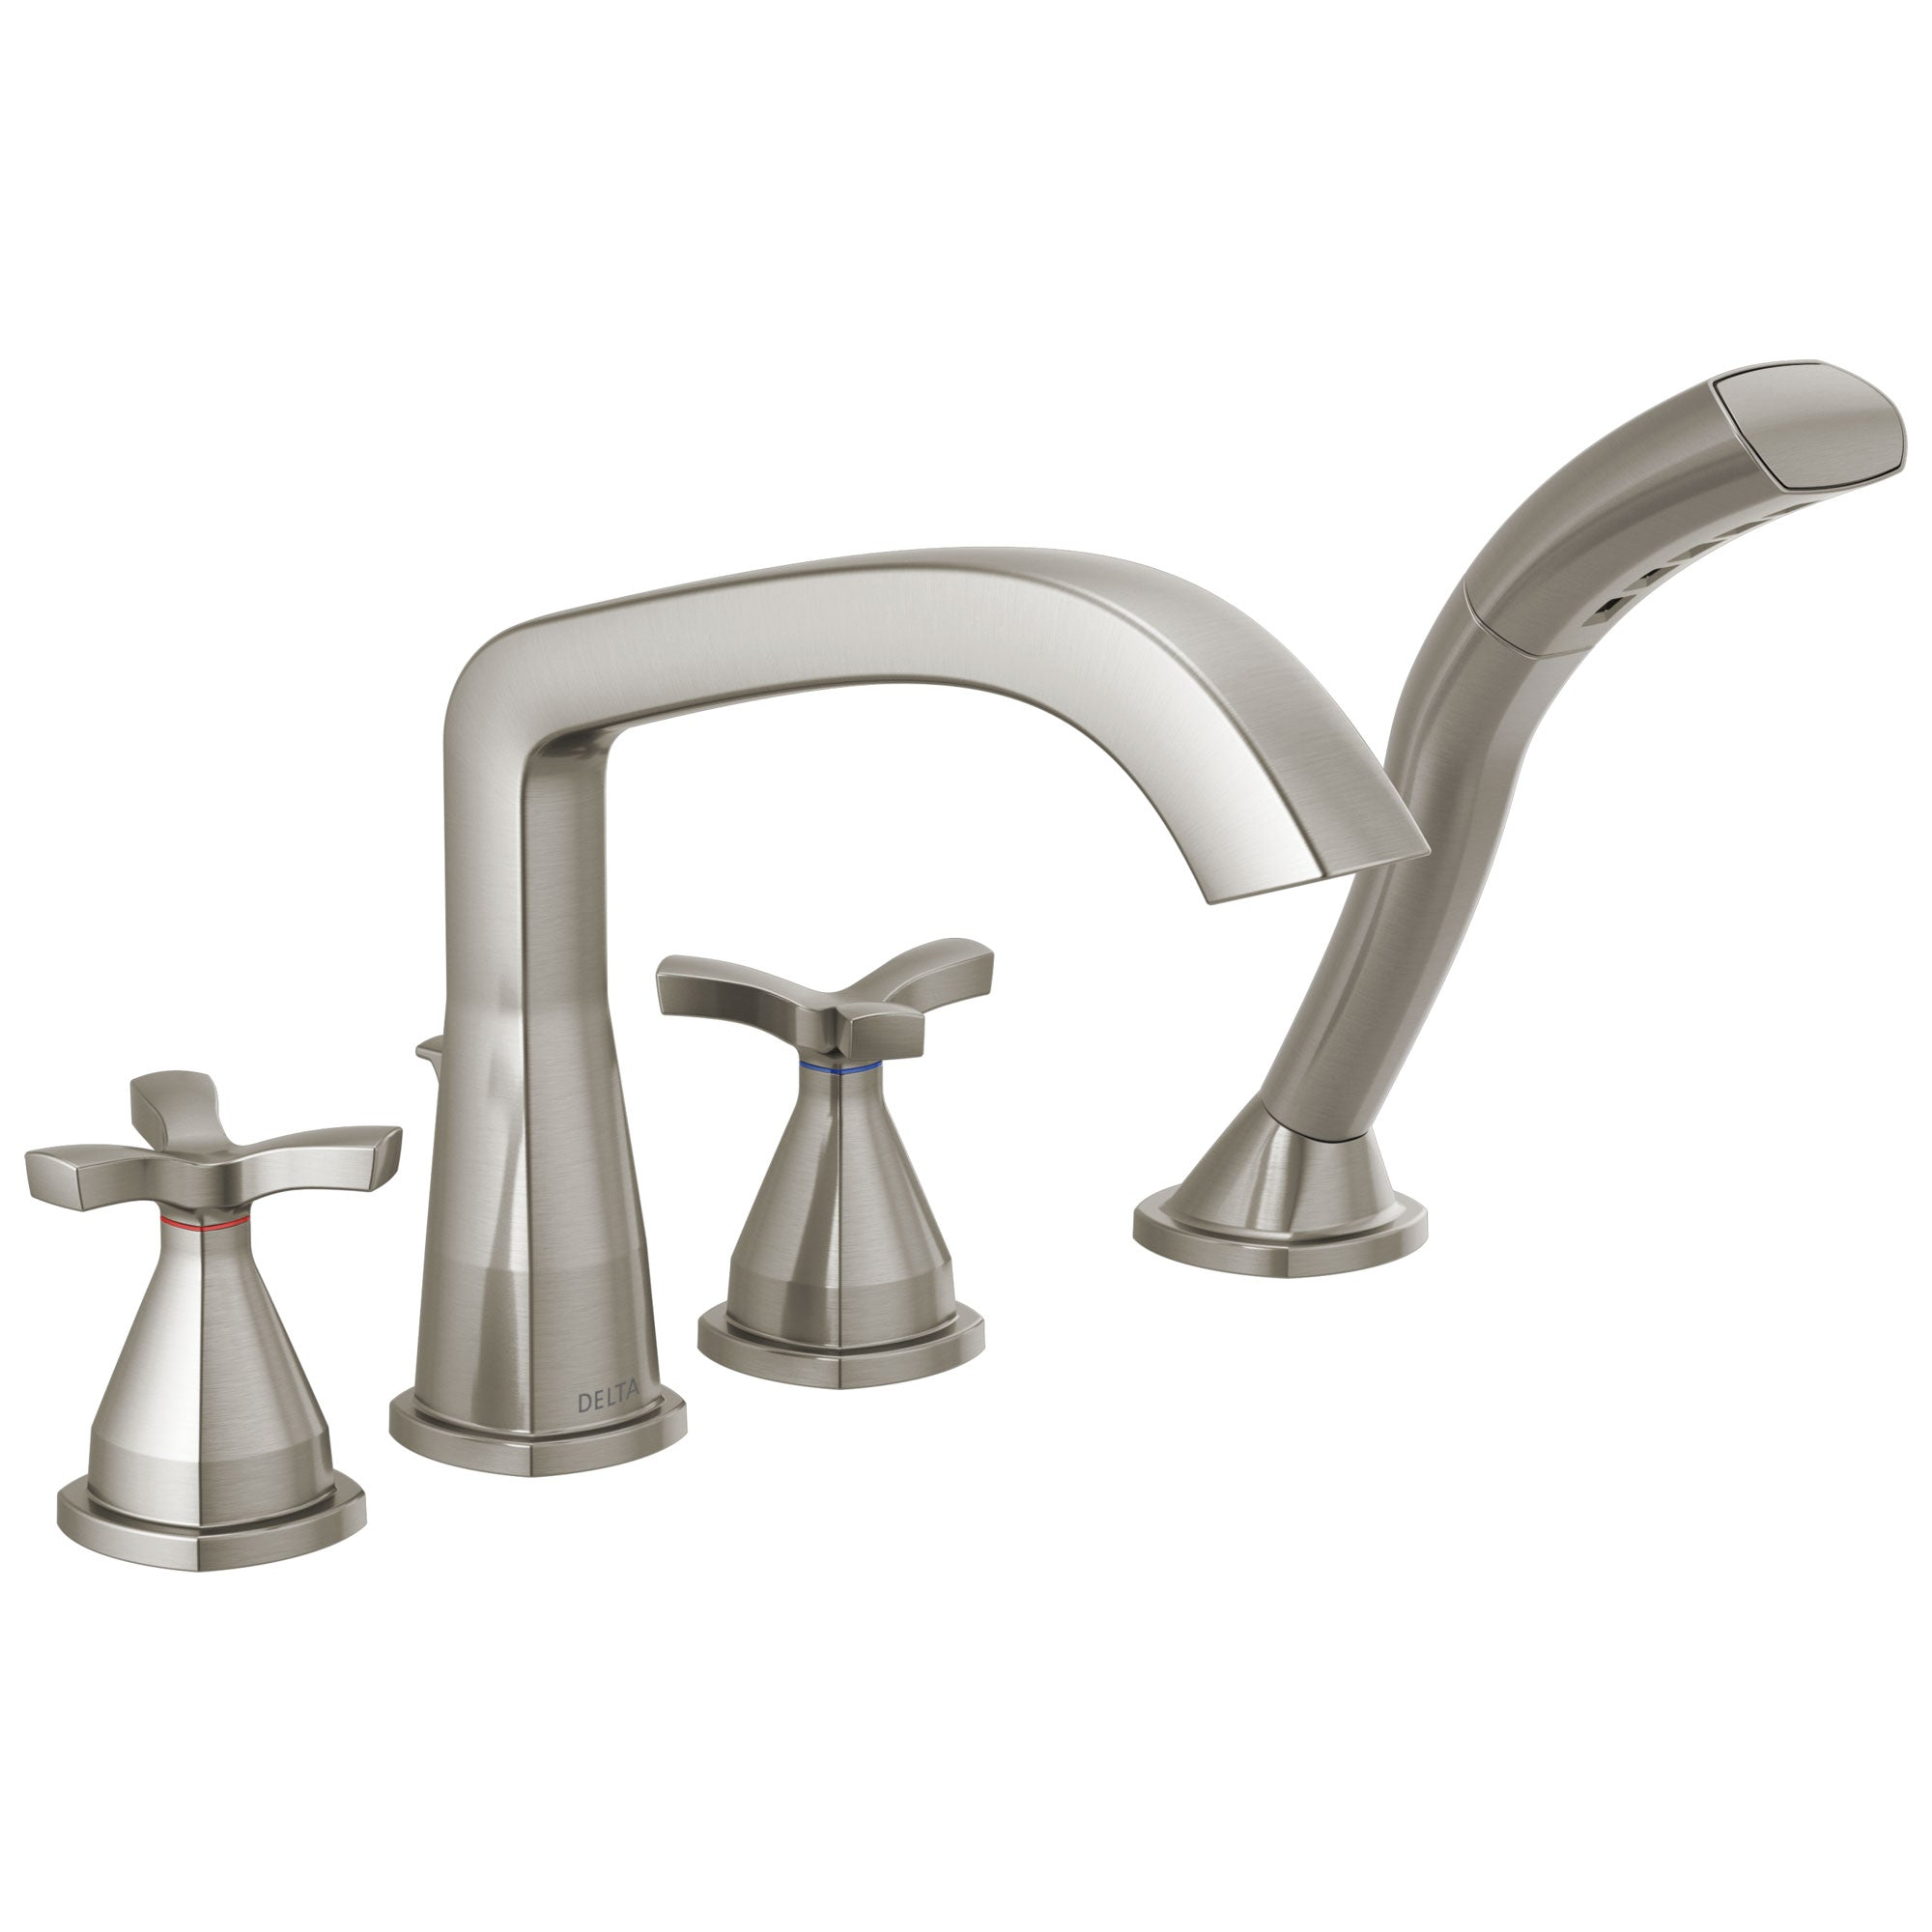 Delta Stryke Stainless Steel Finish Cross Handle Deck Mount Roman Tub Filler Faucet with Hand Shower Trim Kit (Requires Valve) DT47766SS